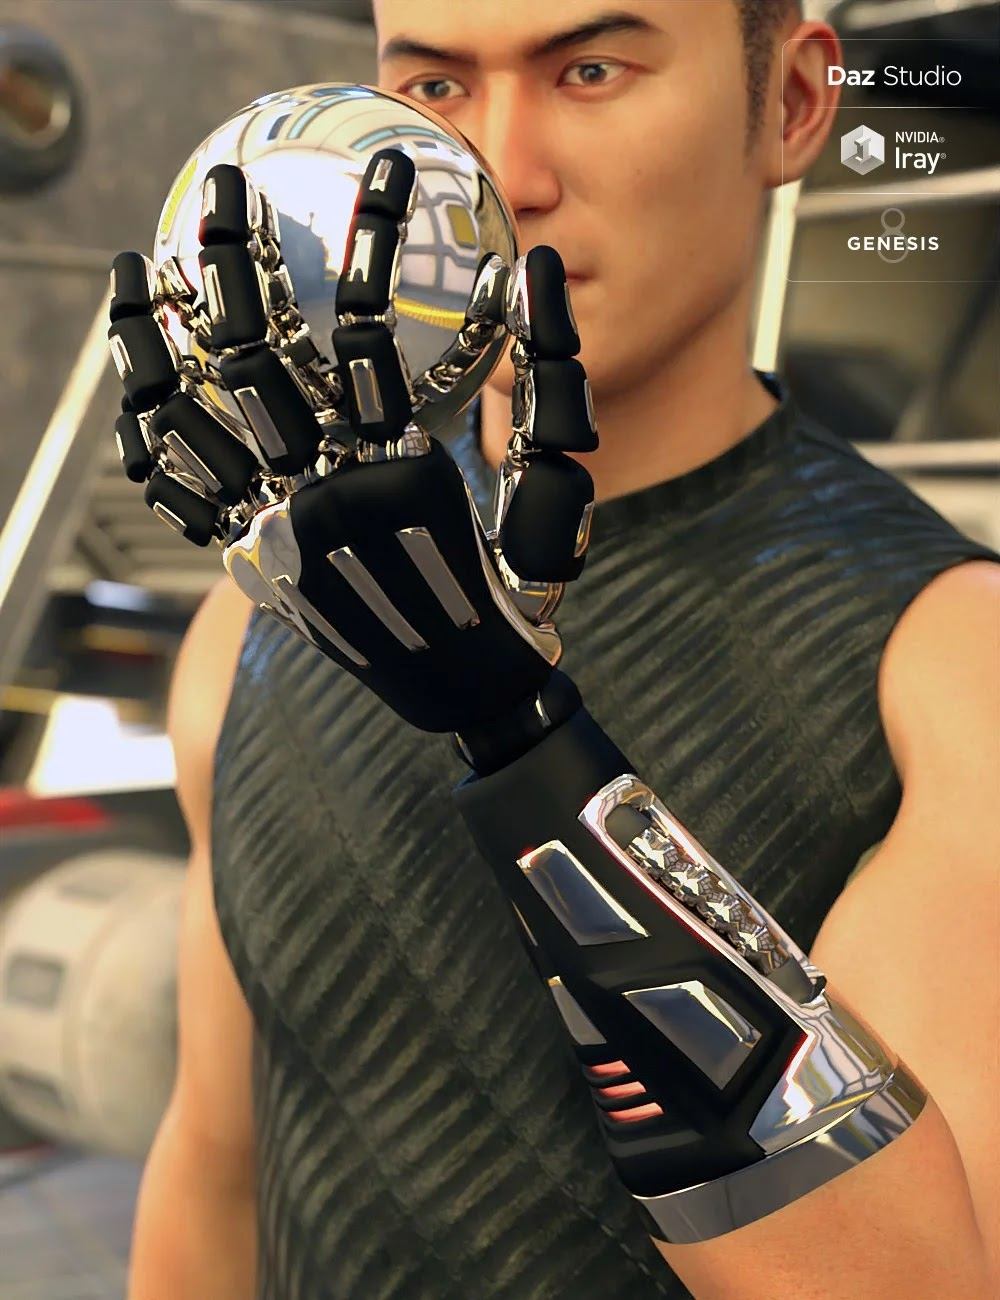 Bionic Forearms for Genesis 8|Poser and DAZ Studio 3D Models